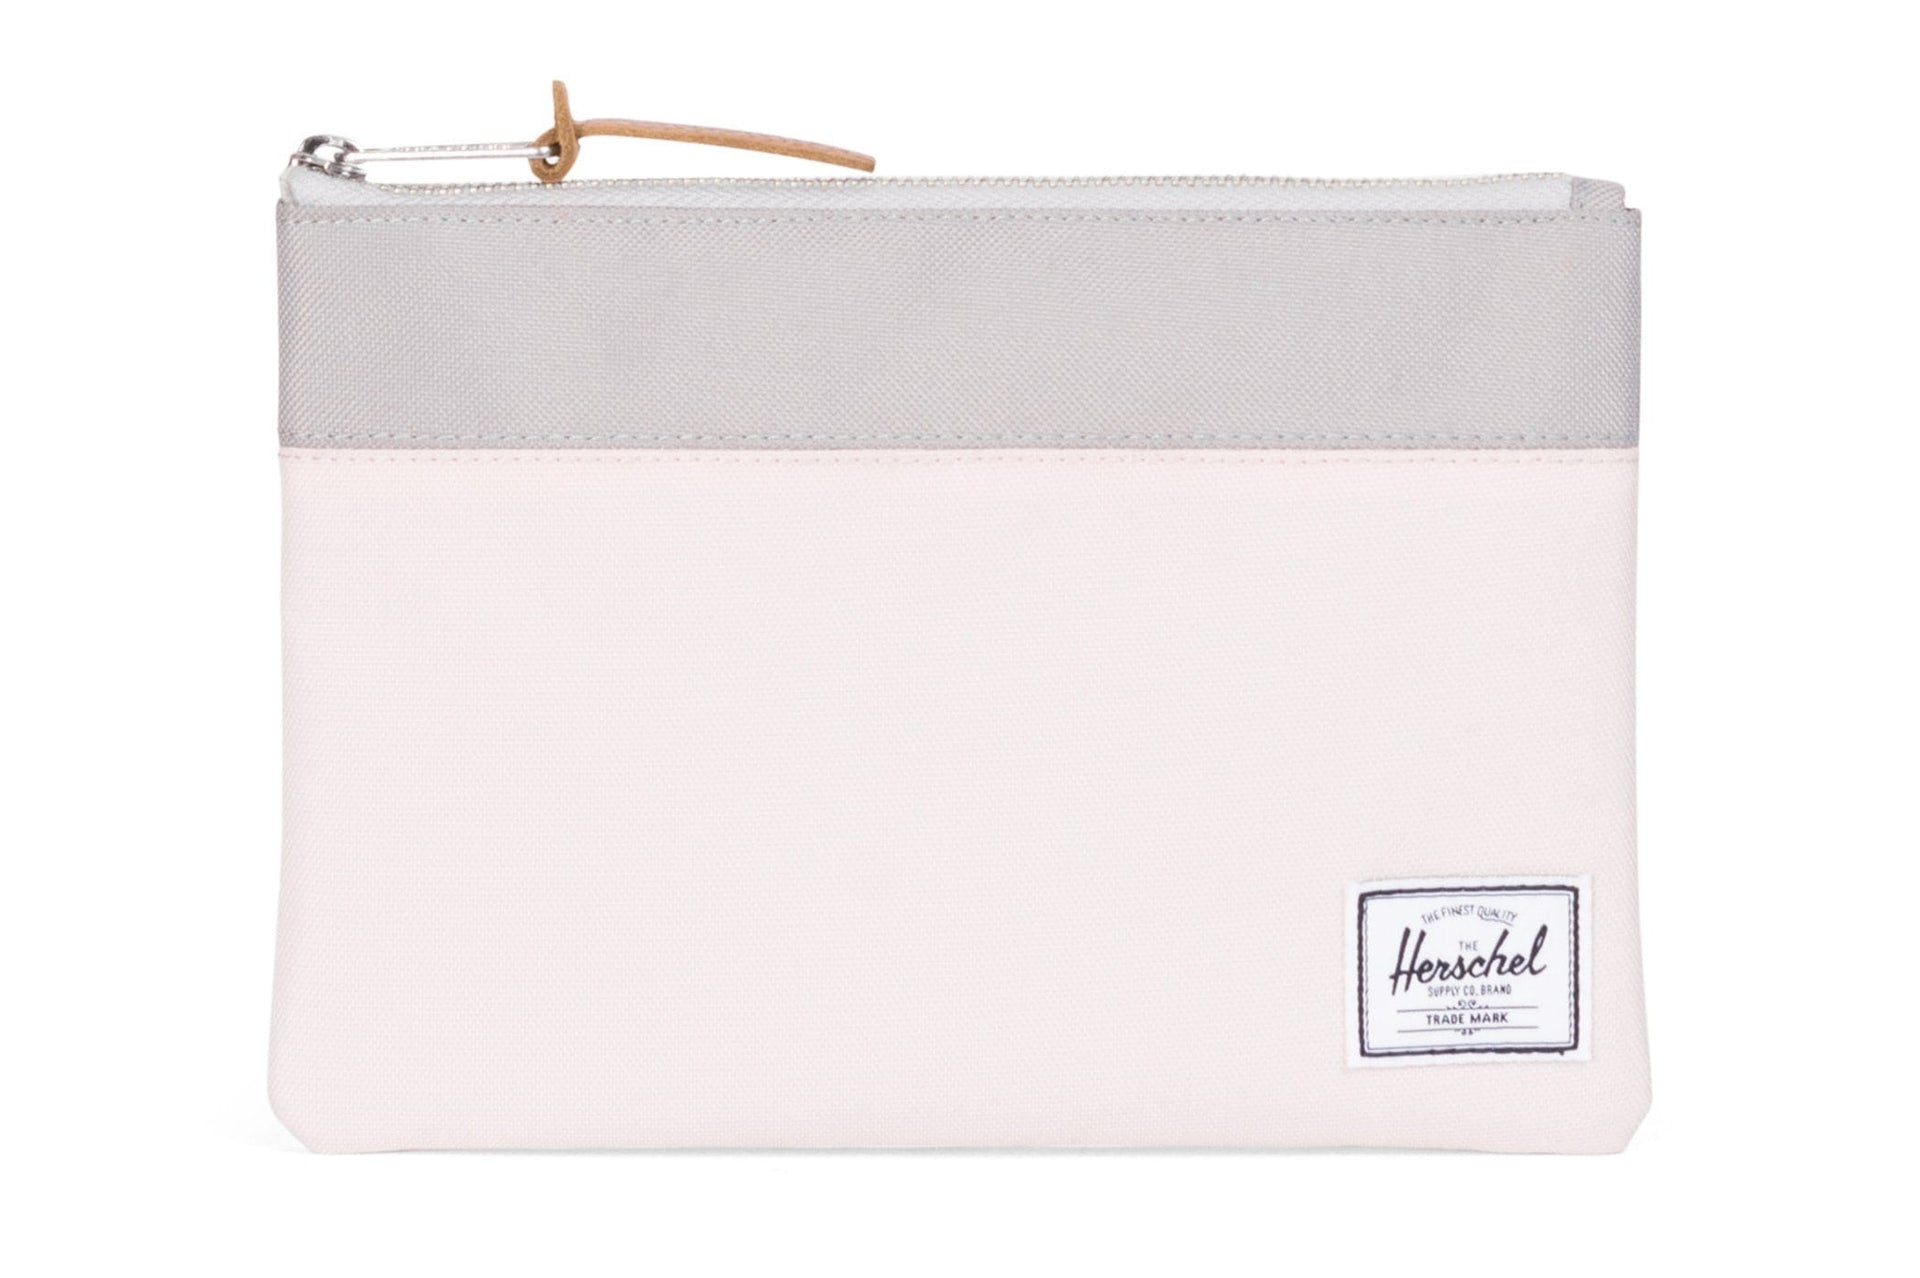 FIELD ACCESSORIES HERSCHEL PINK/ASH ONE SIZE